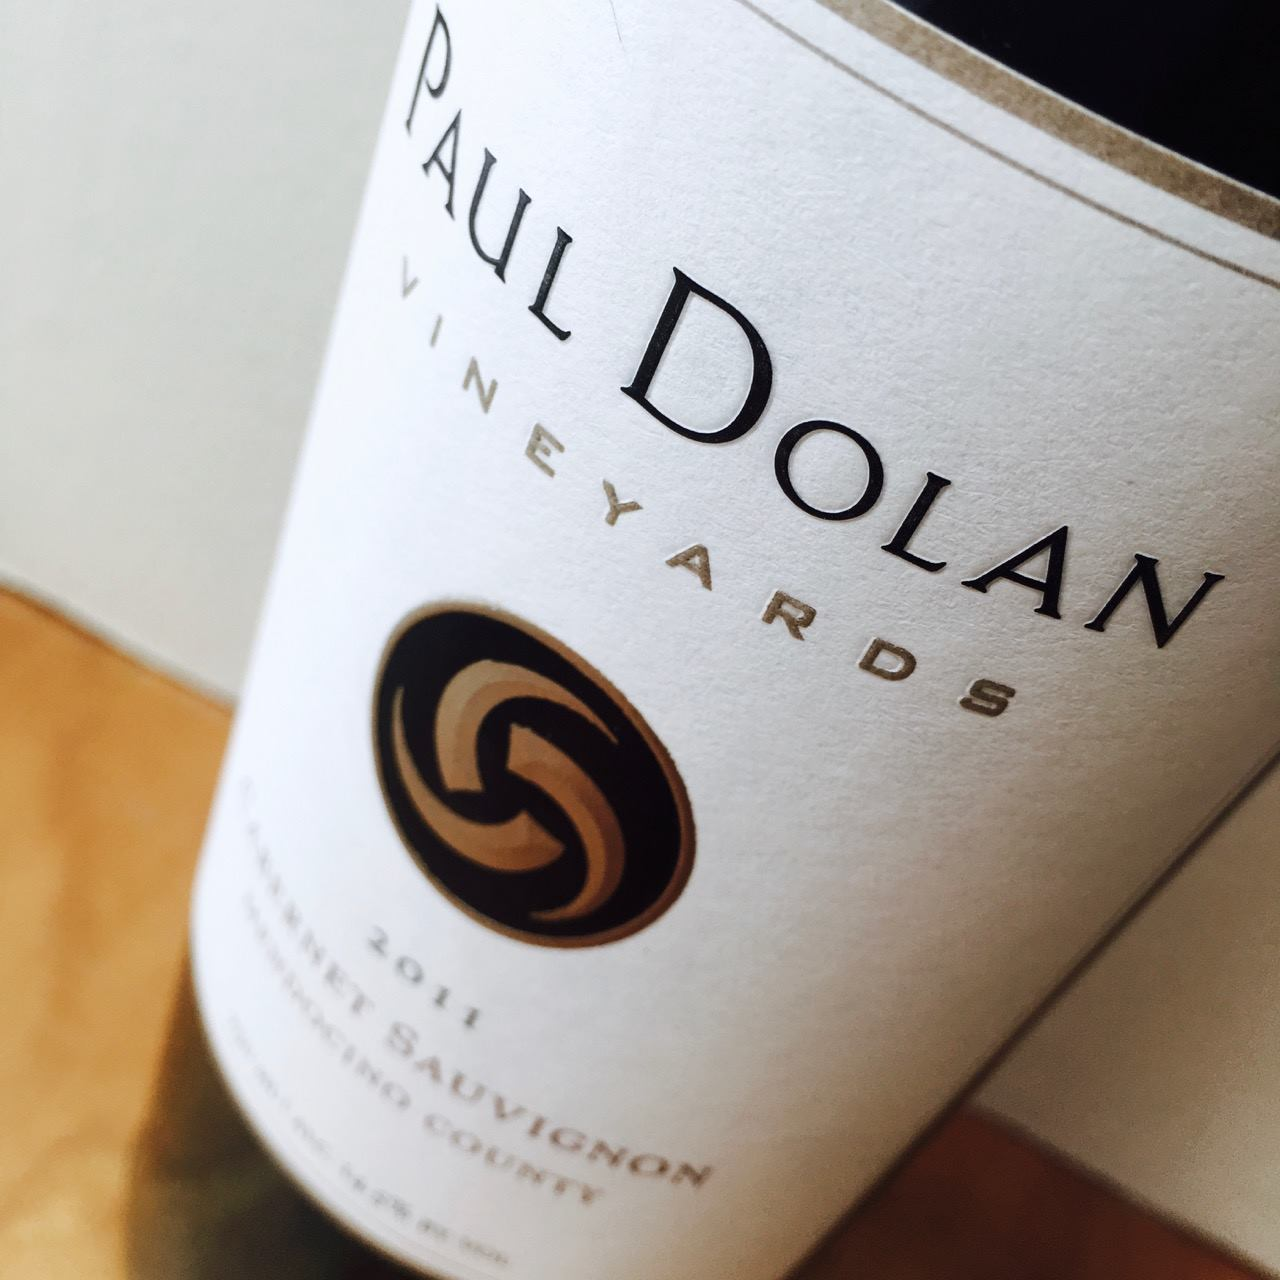 2011 Paul Dolan Vineyards Cabernet Sauvignon Mendocino County